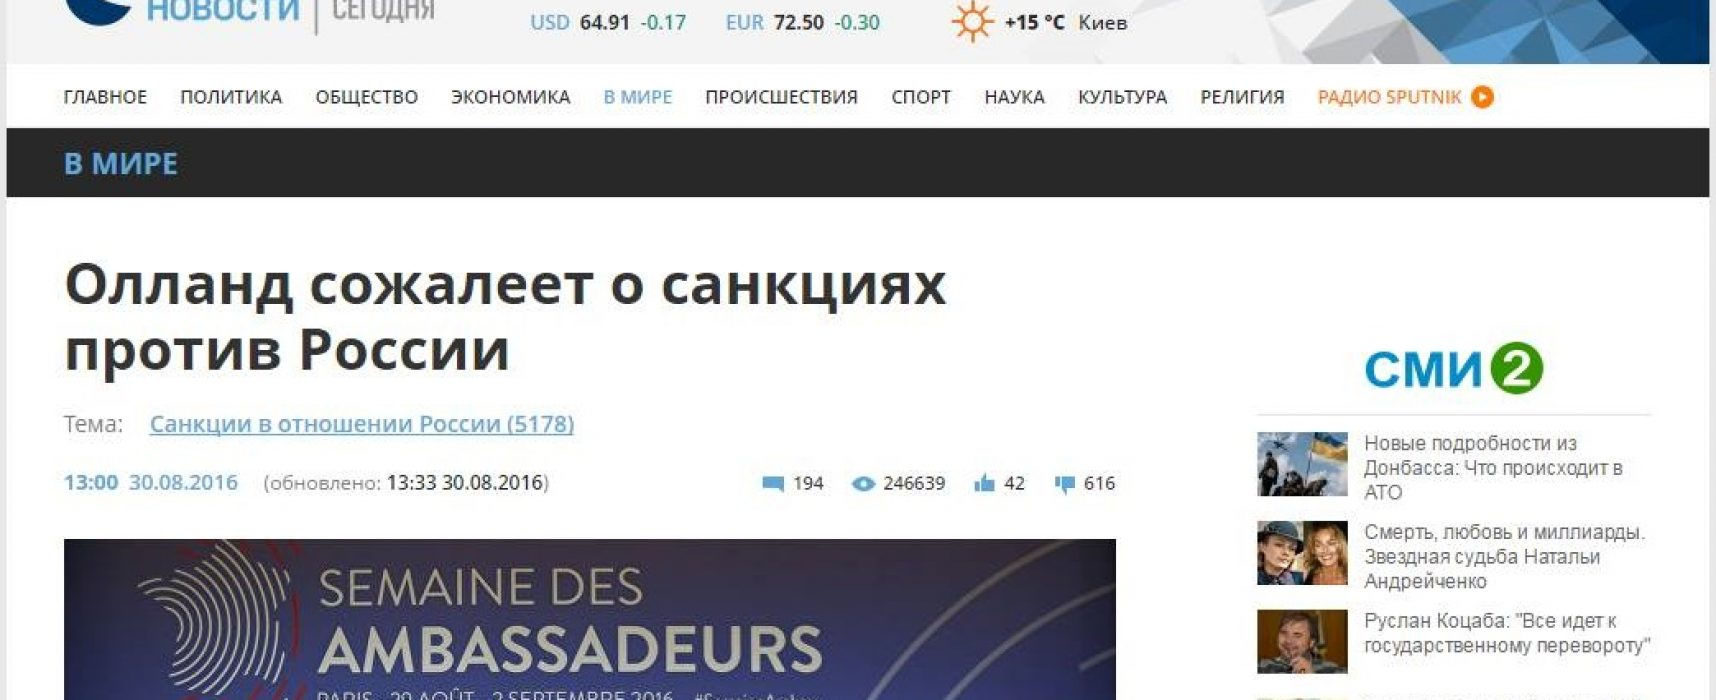 Fake: French President Hollande regrets Russia sanctions